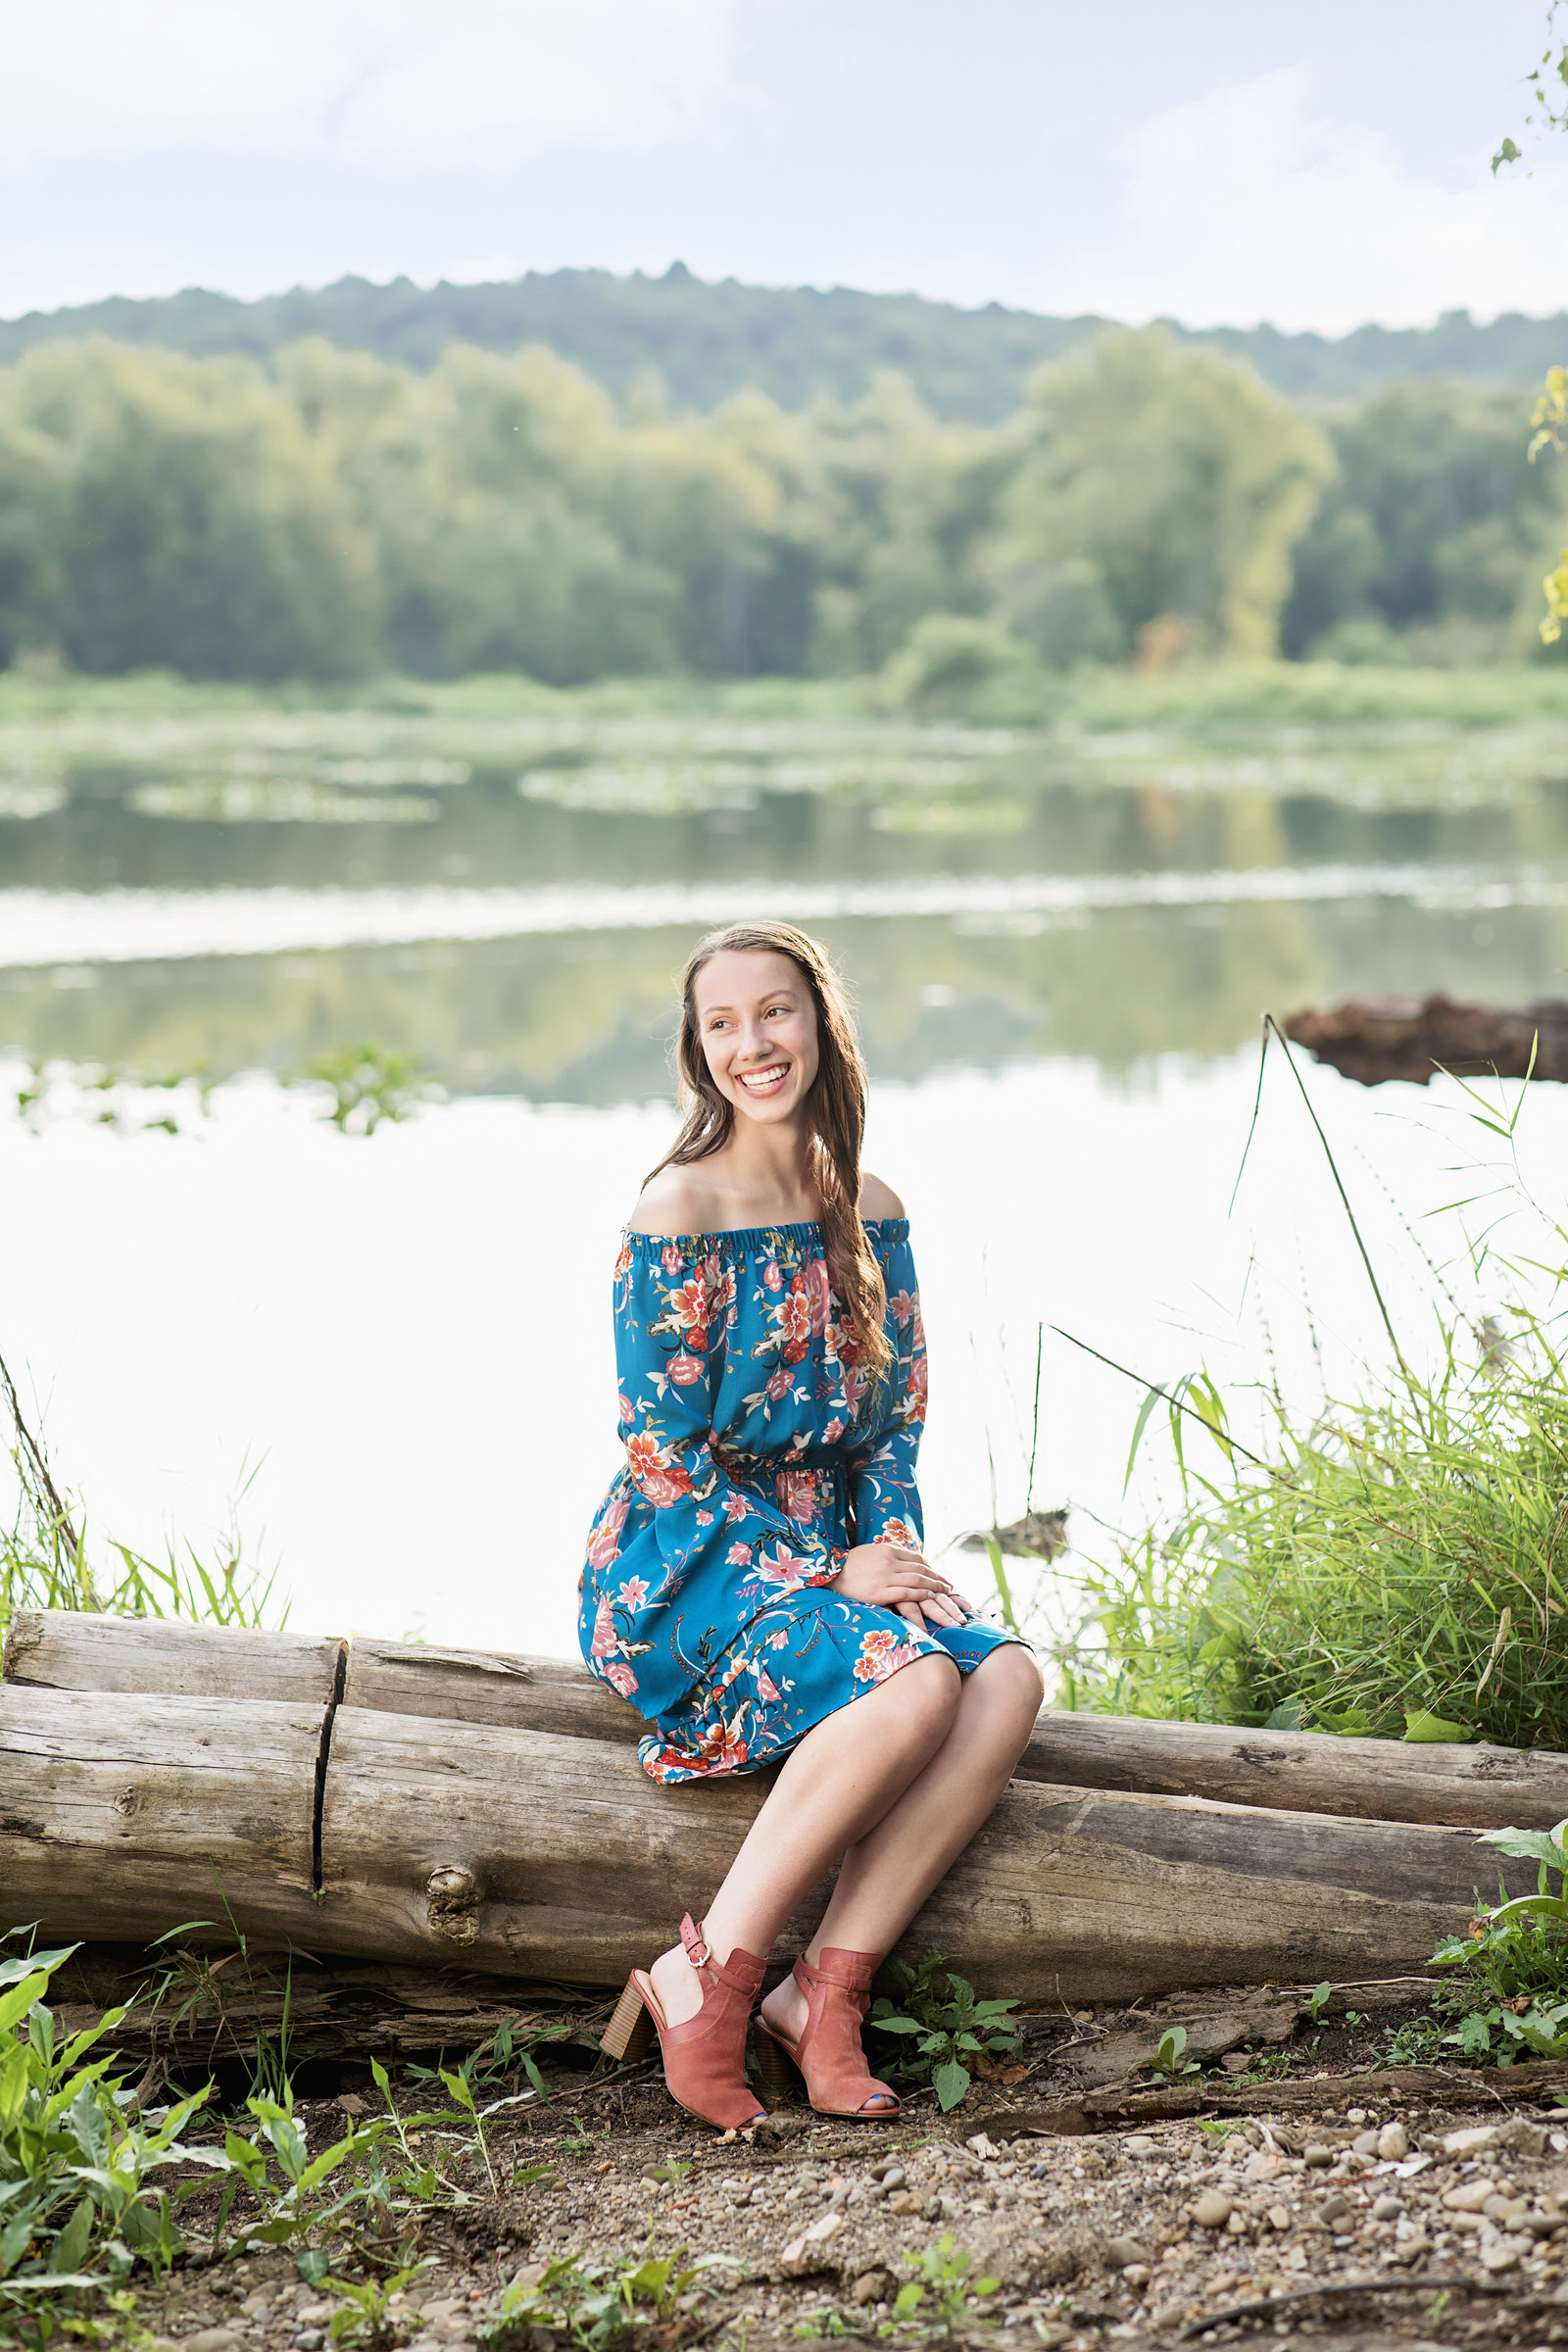 Cleveland-Senior-Photographer-Ashley-McComb-Productions-31693388